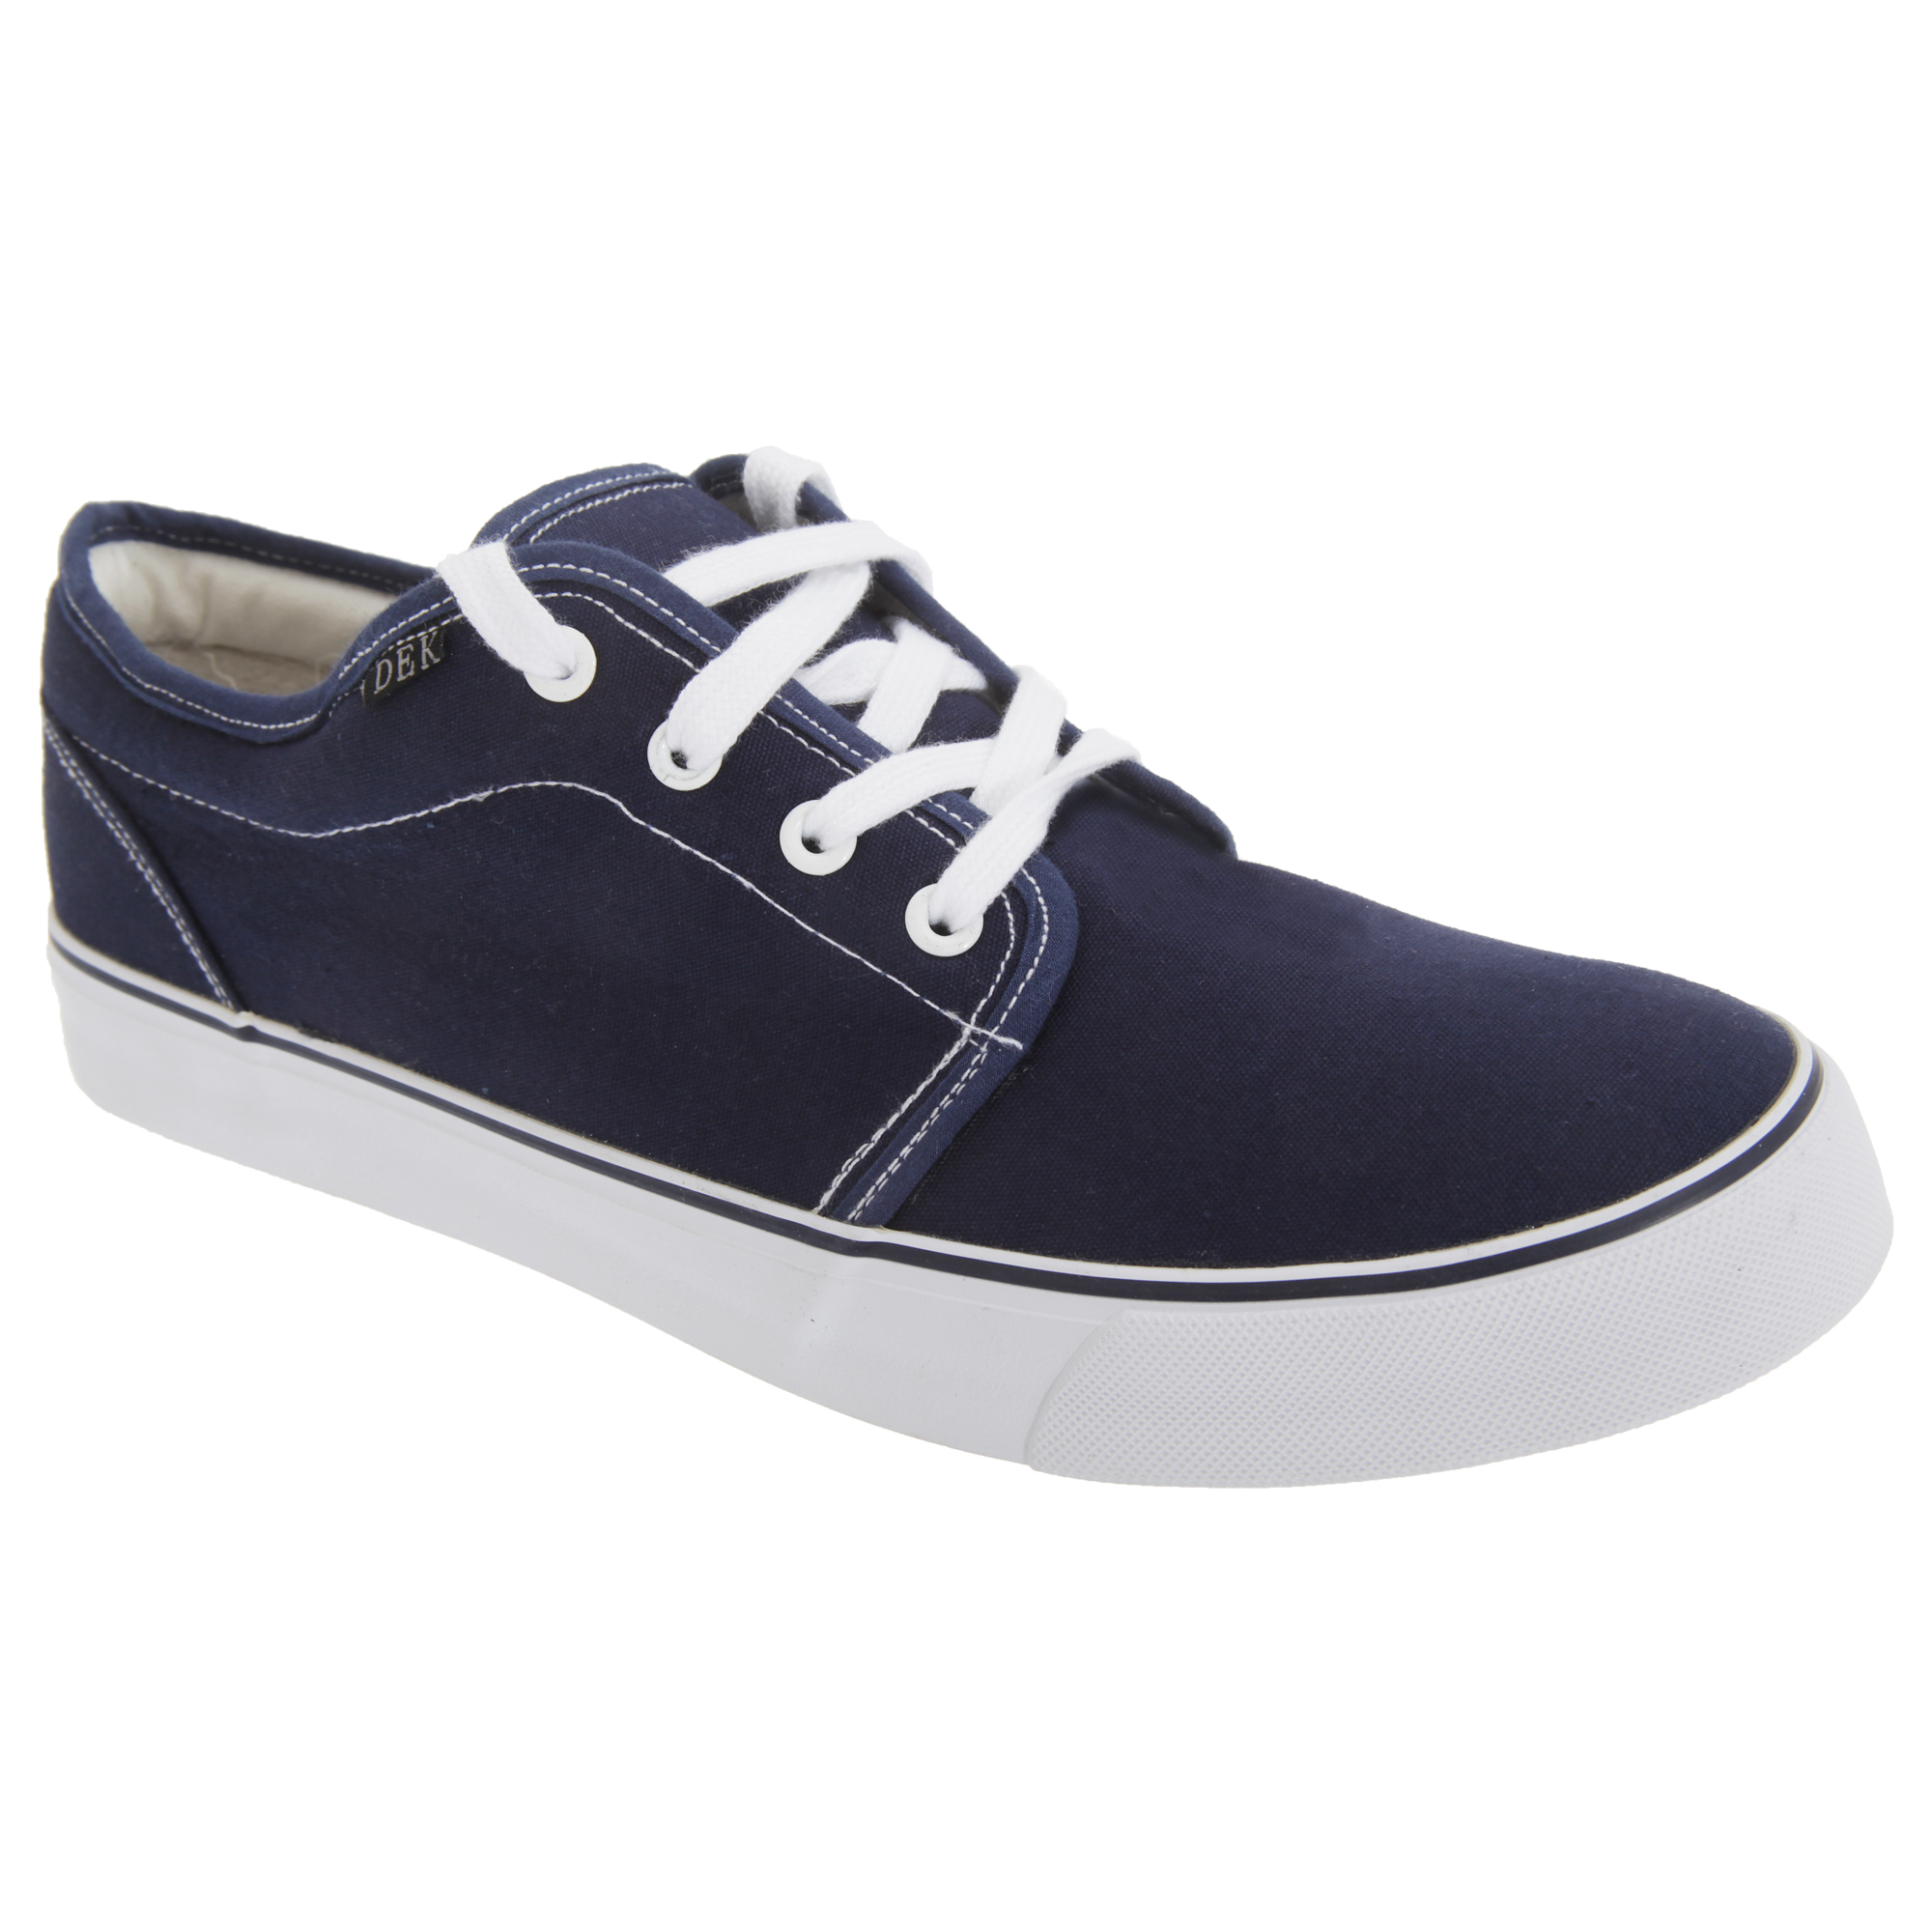 dek mens 4 eye padded canvas deck shoes navy blue